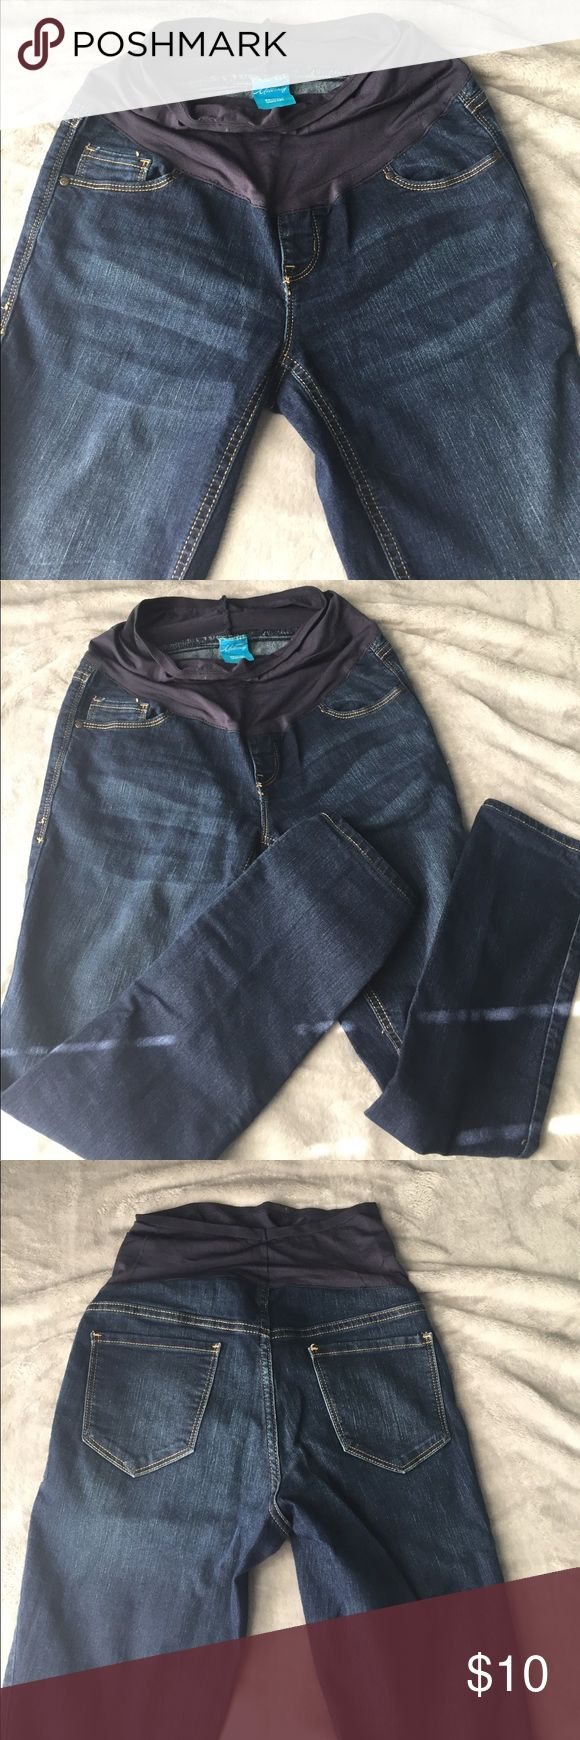 Old navy maternity jeans Old navy skinny smooth panel maternity jeans.  Size 6.  Great condition. Old Navy Jeans